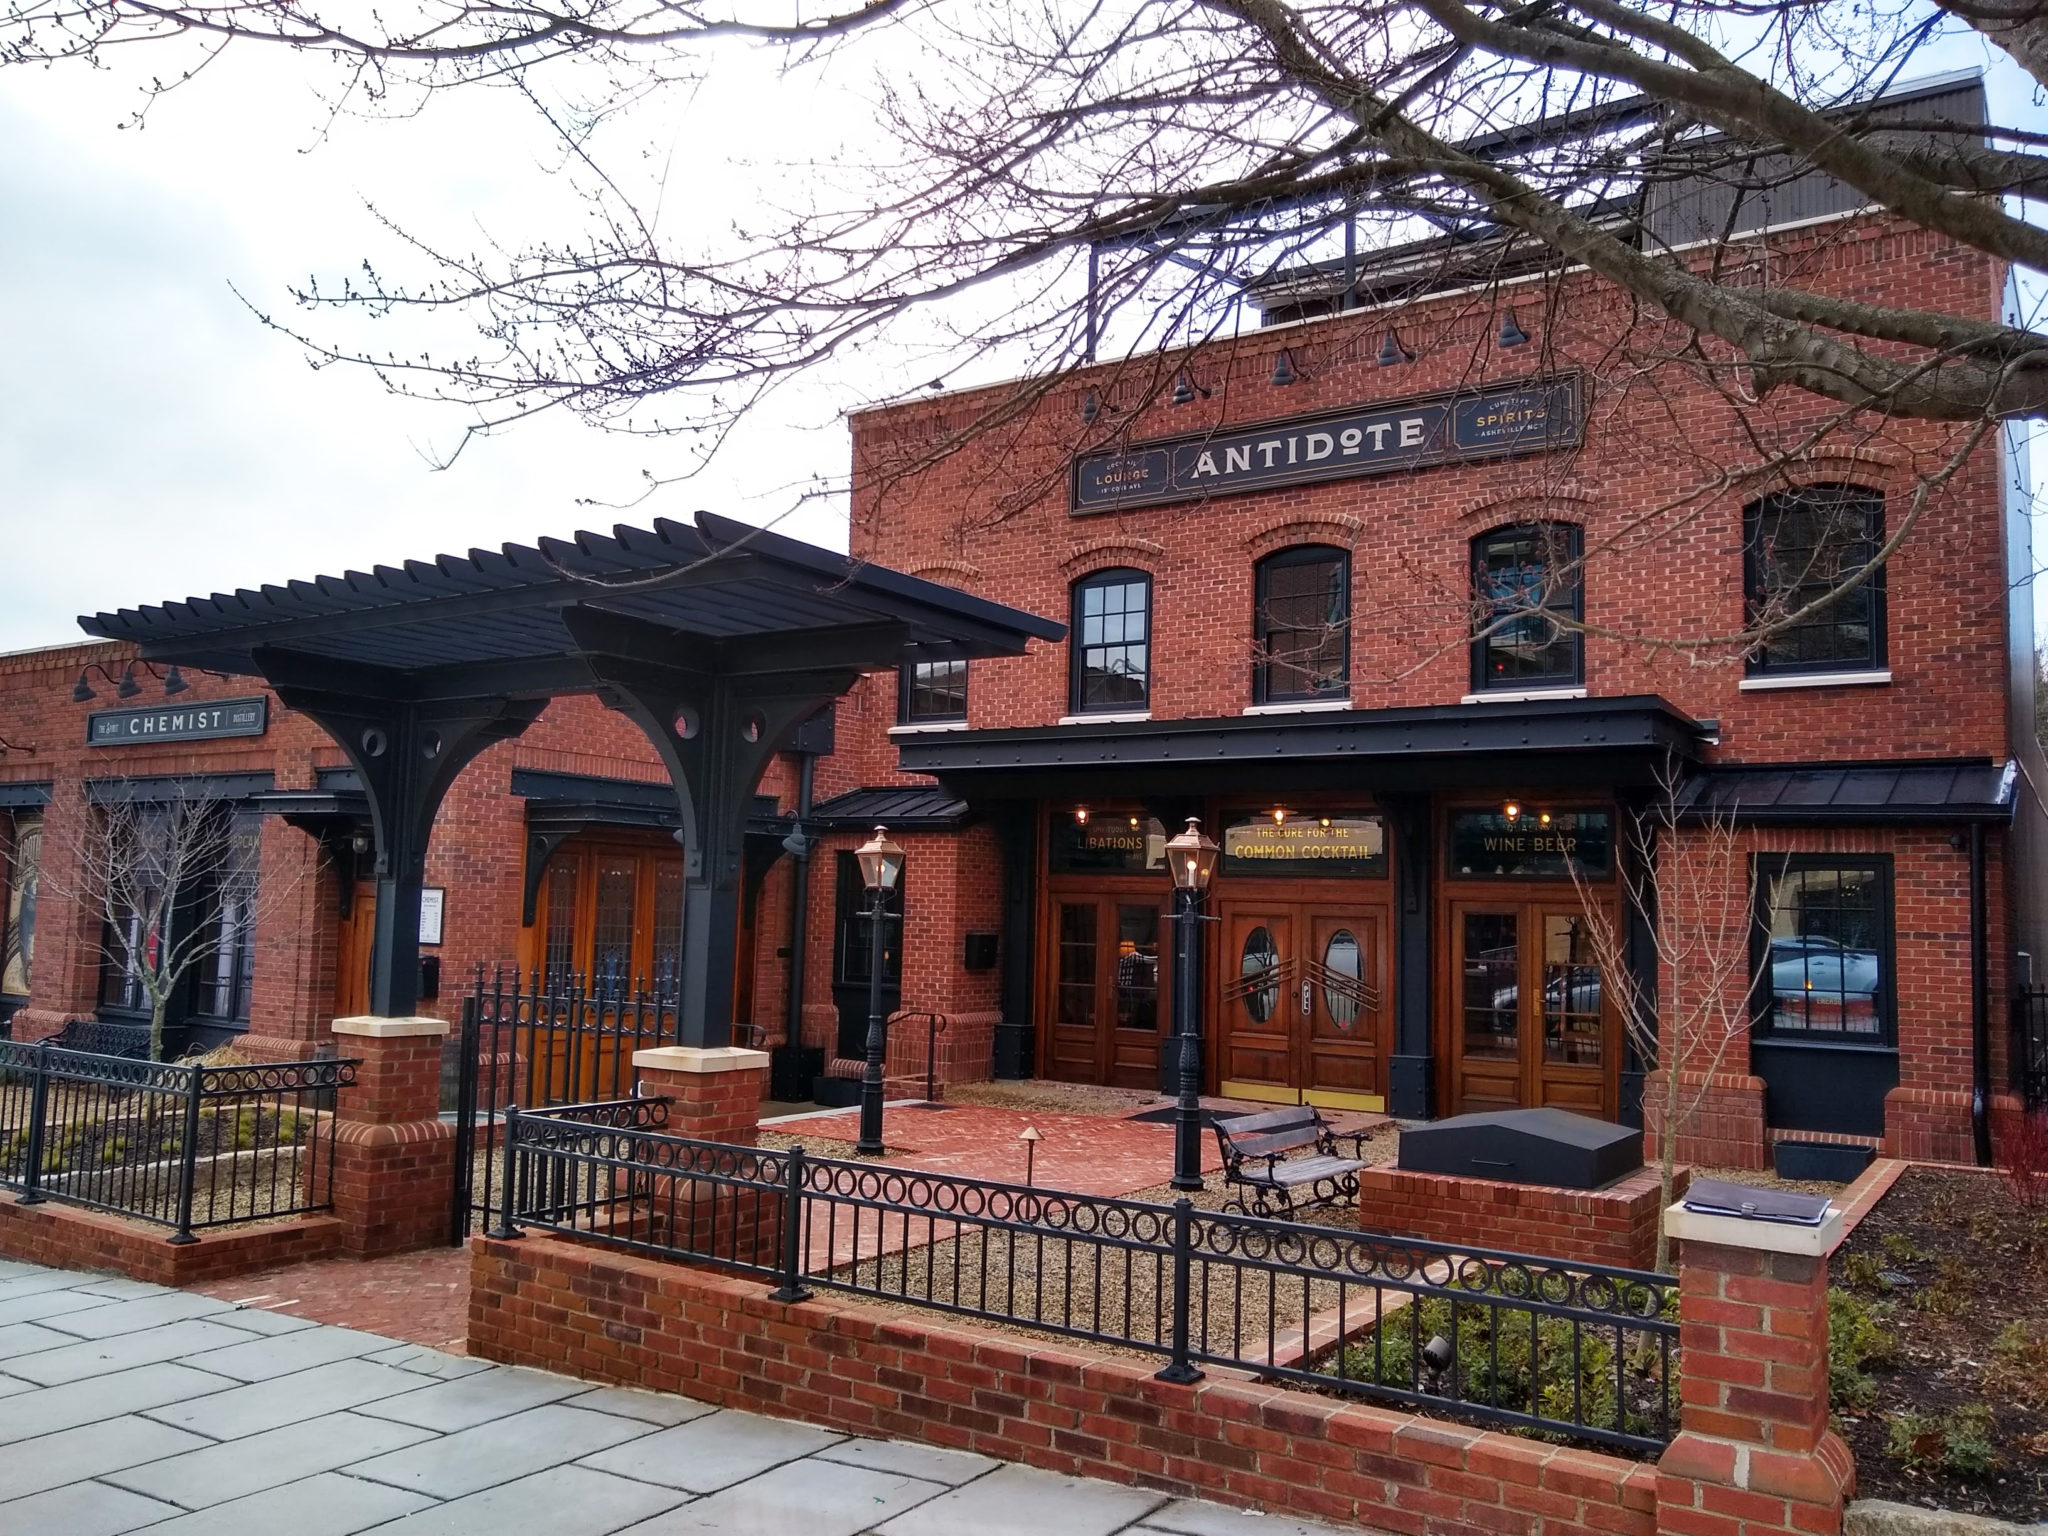 The Antidote Asheville Commercial Architecture